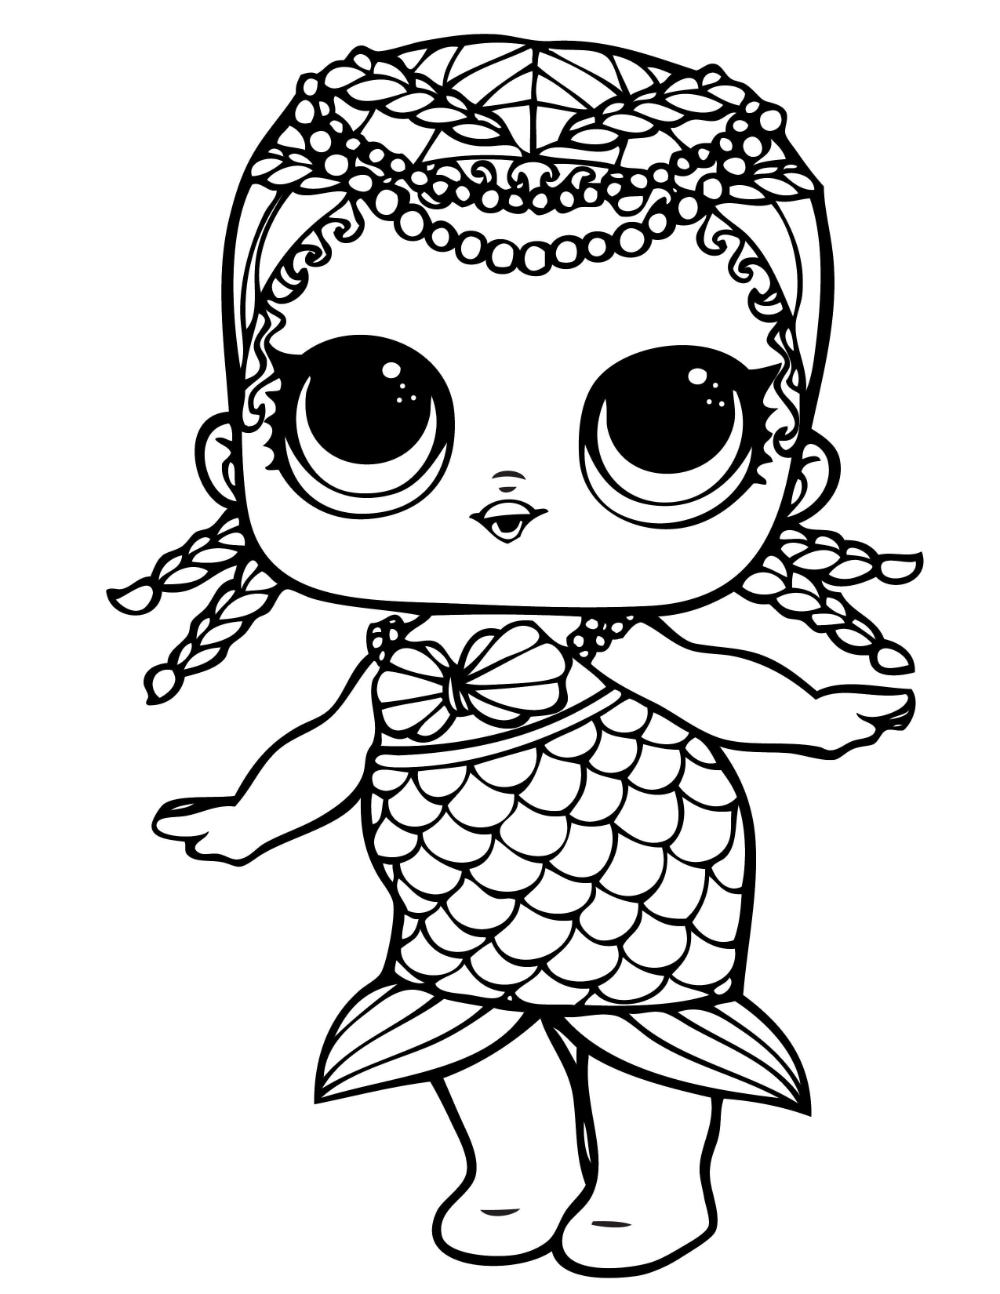 LOL Dolls Coloring Pages - Best Coloring Pages For Kids in ...